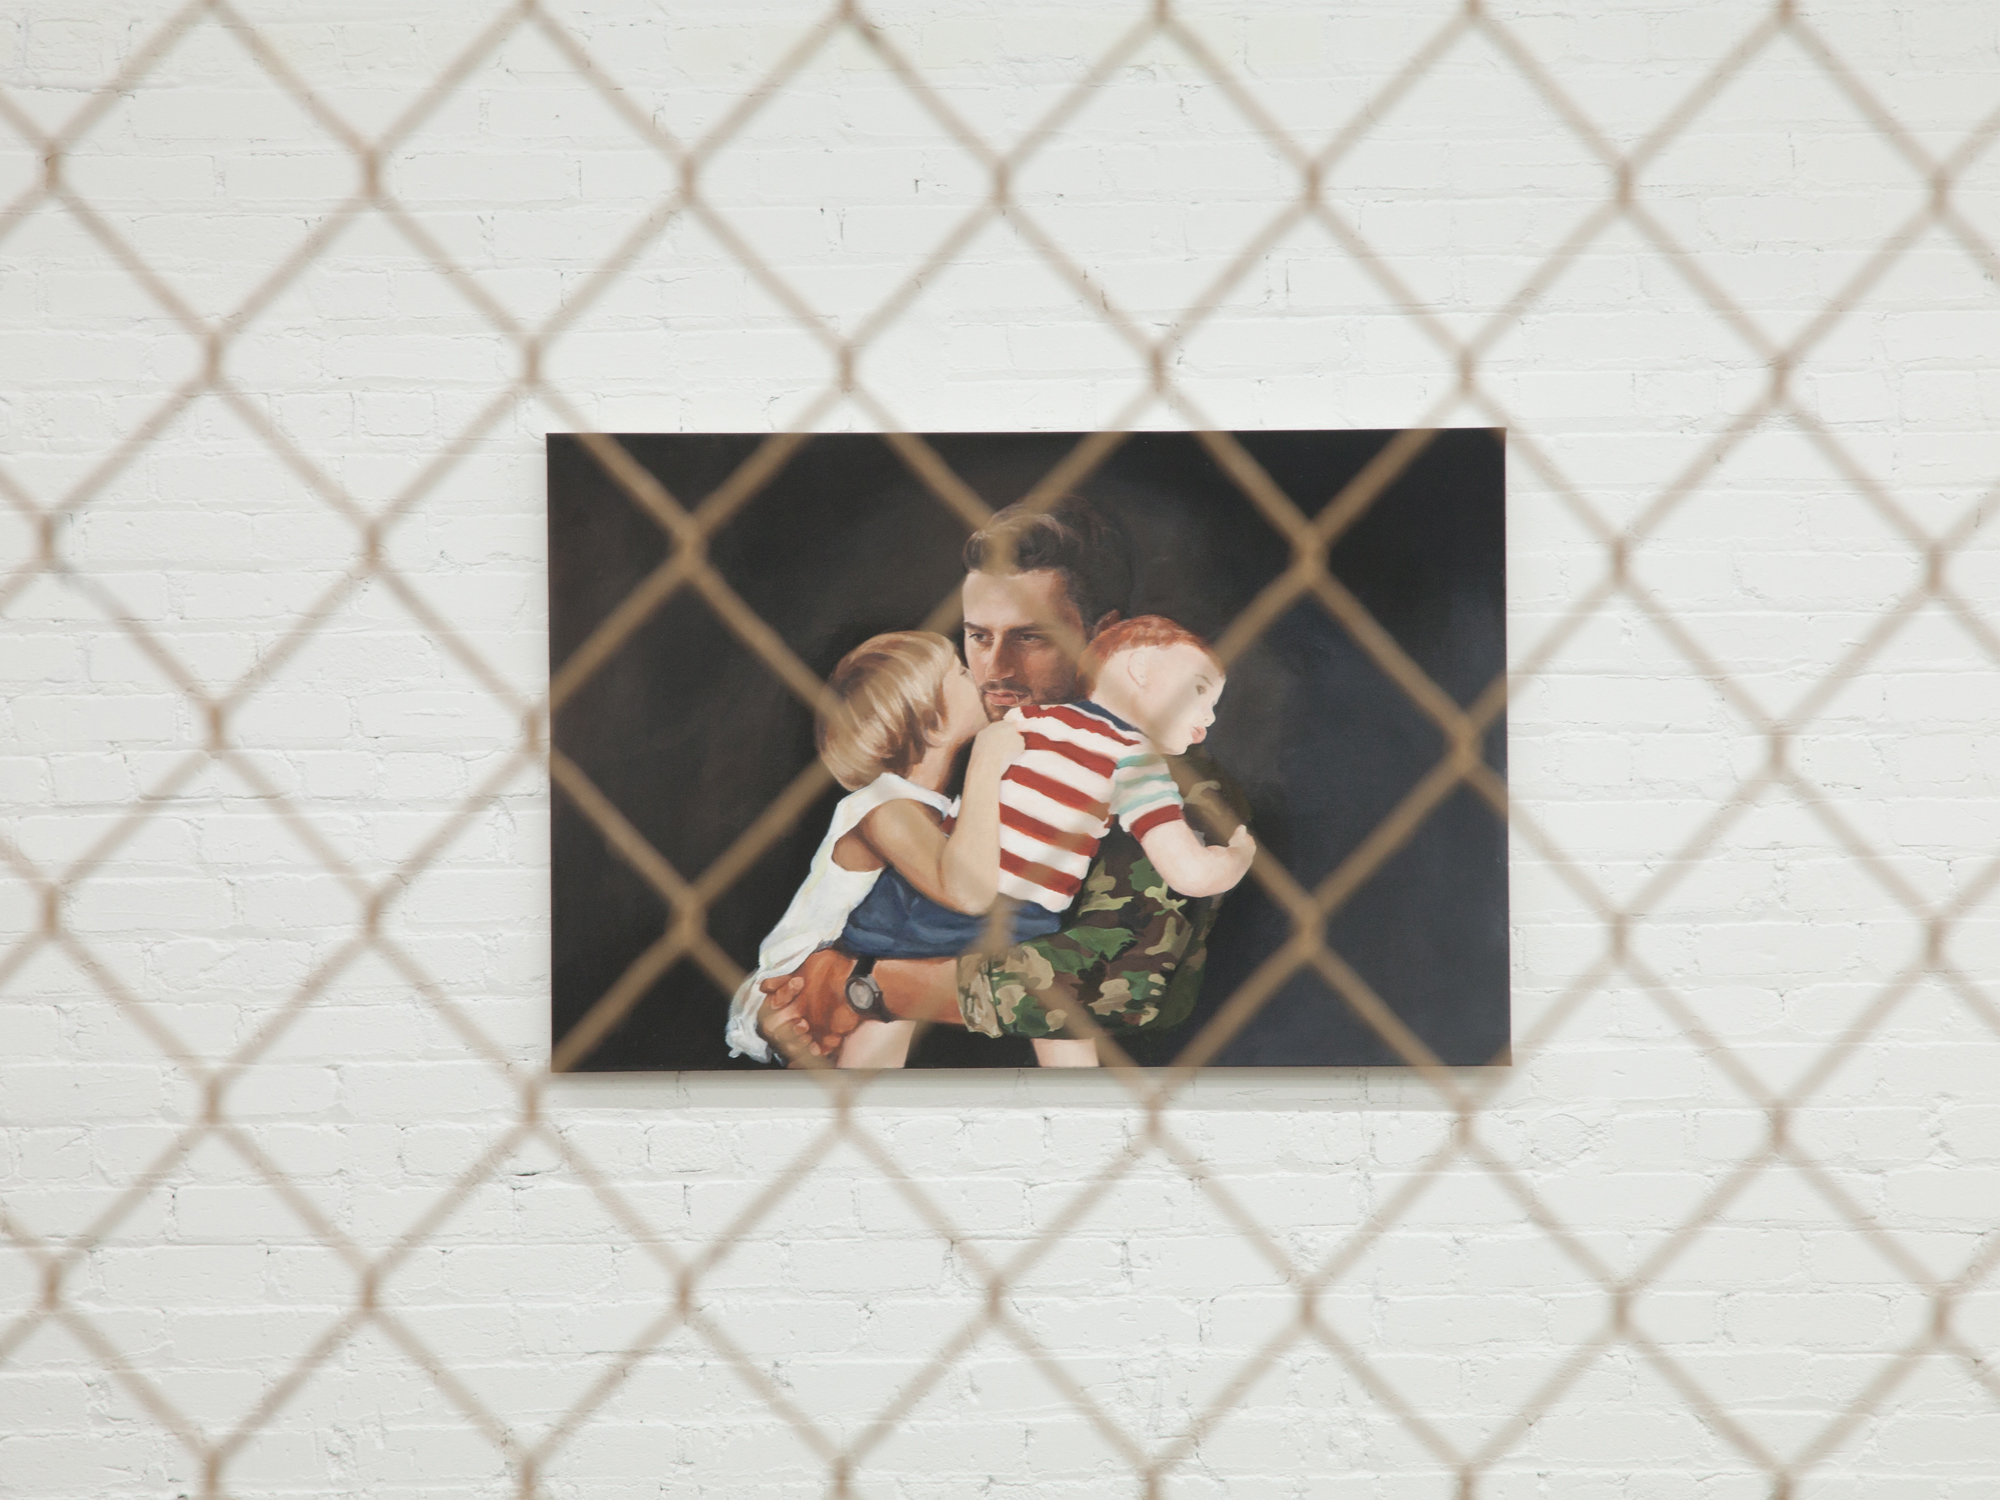 Installation View of  Aspire and Inspire: A Custom Painting of You As A Soldier Returning Home to Your Kids